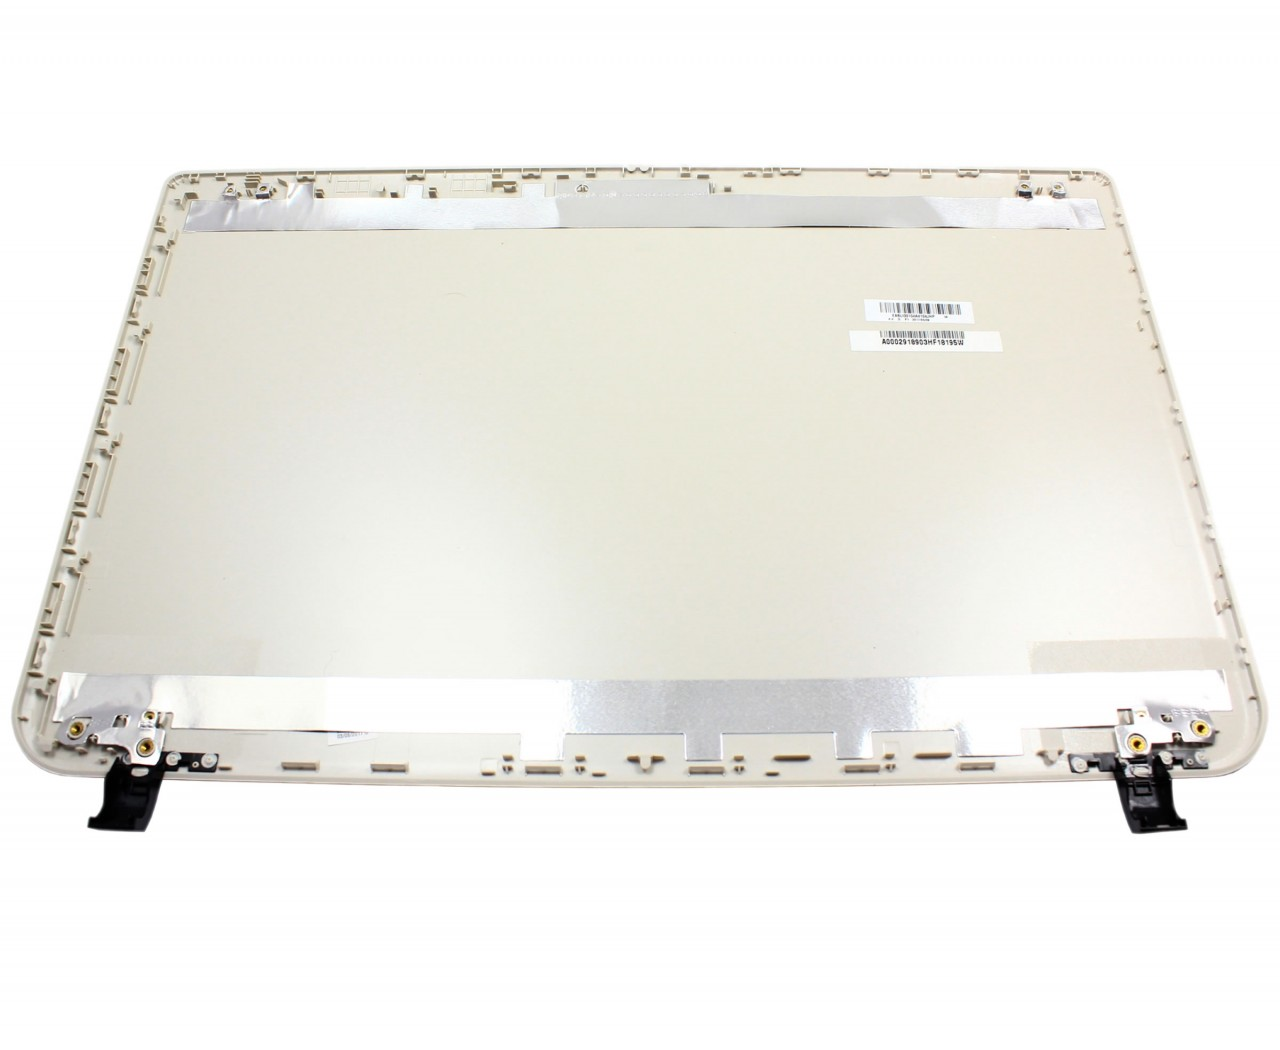 Capac Display BackCover Toshiba A000291890 Carcasa Display Argintie imagine powerlaptop.ro 2021